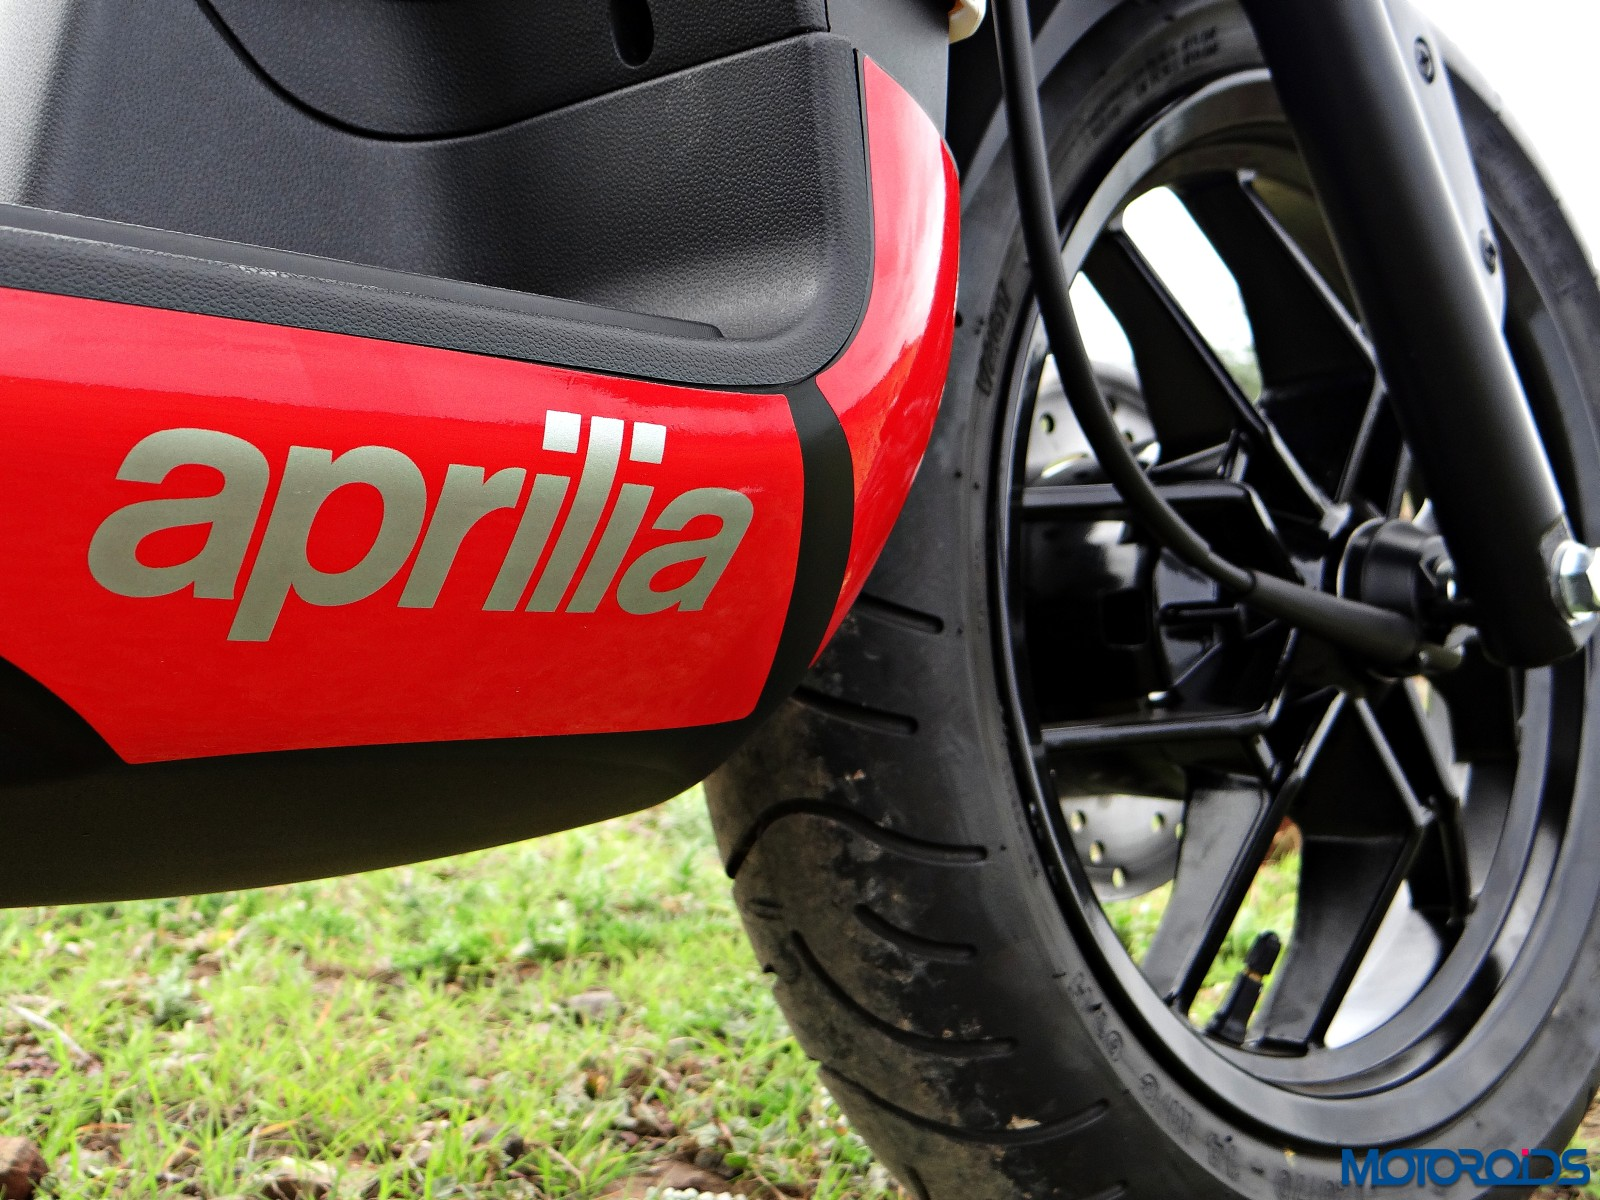 Aprilia SR 150 Review - Details - Footboard Graphics (1)